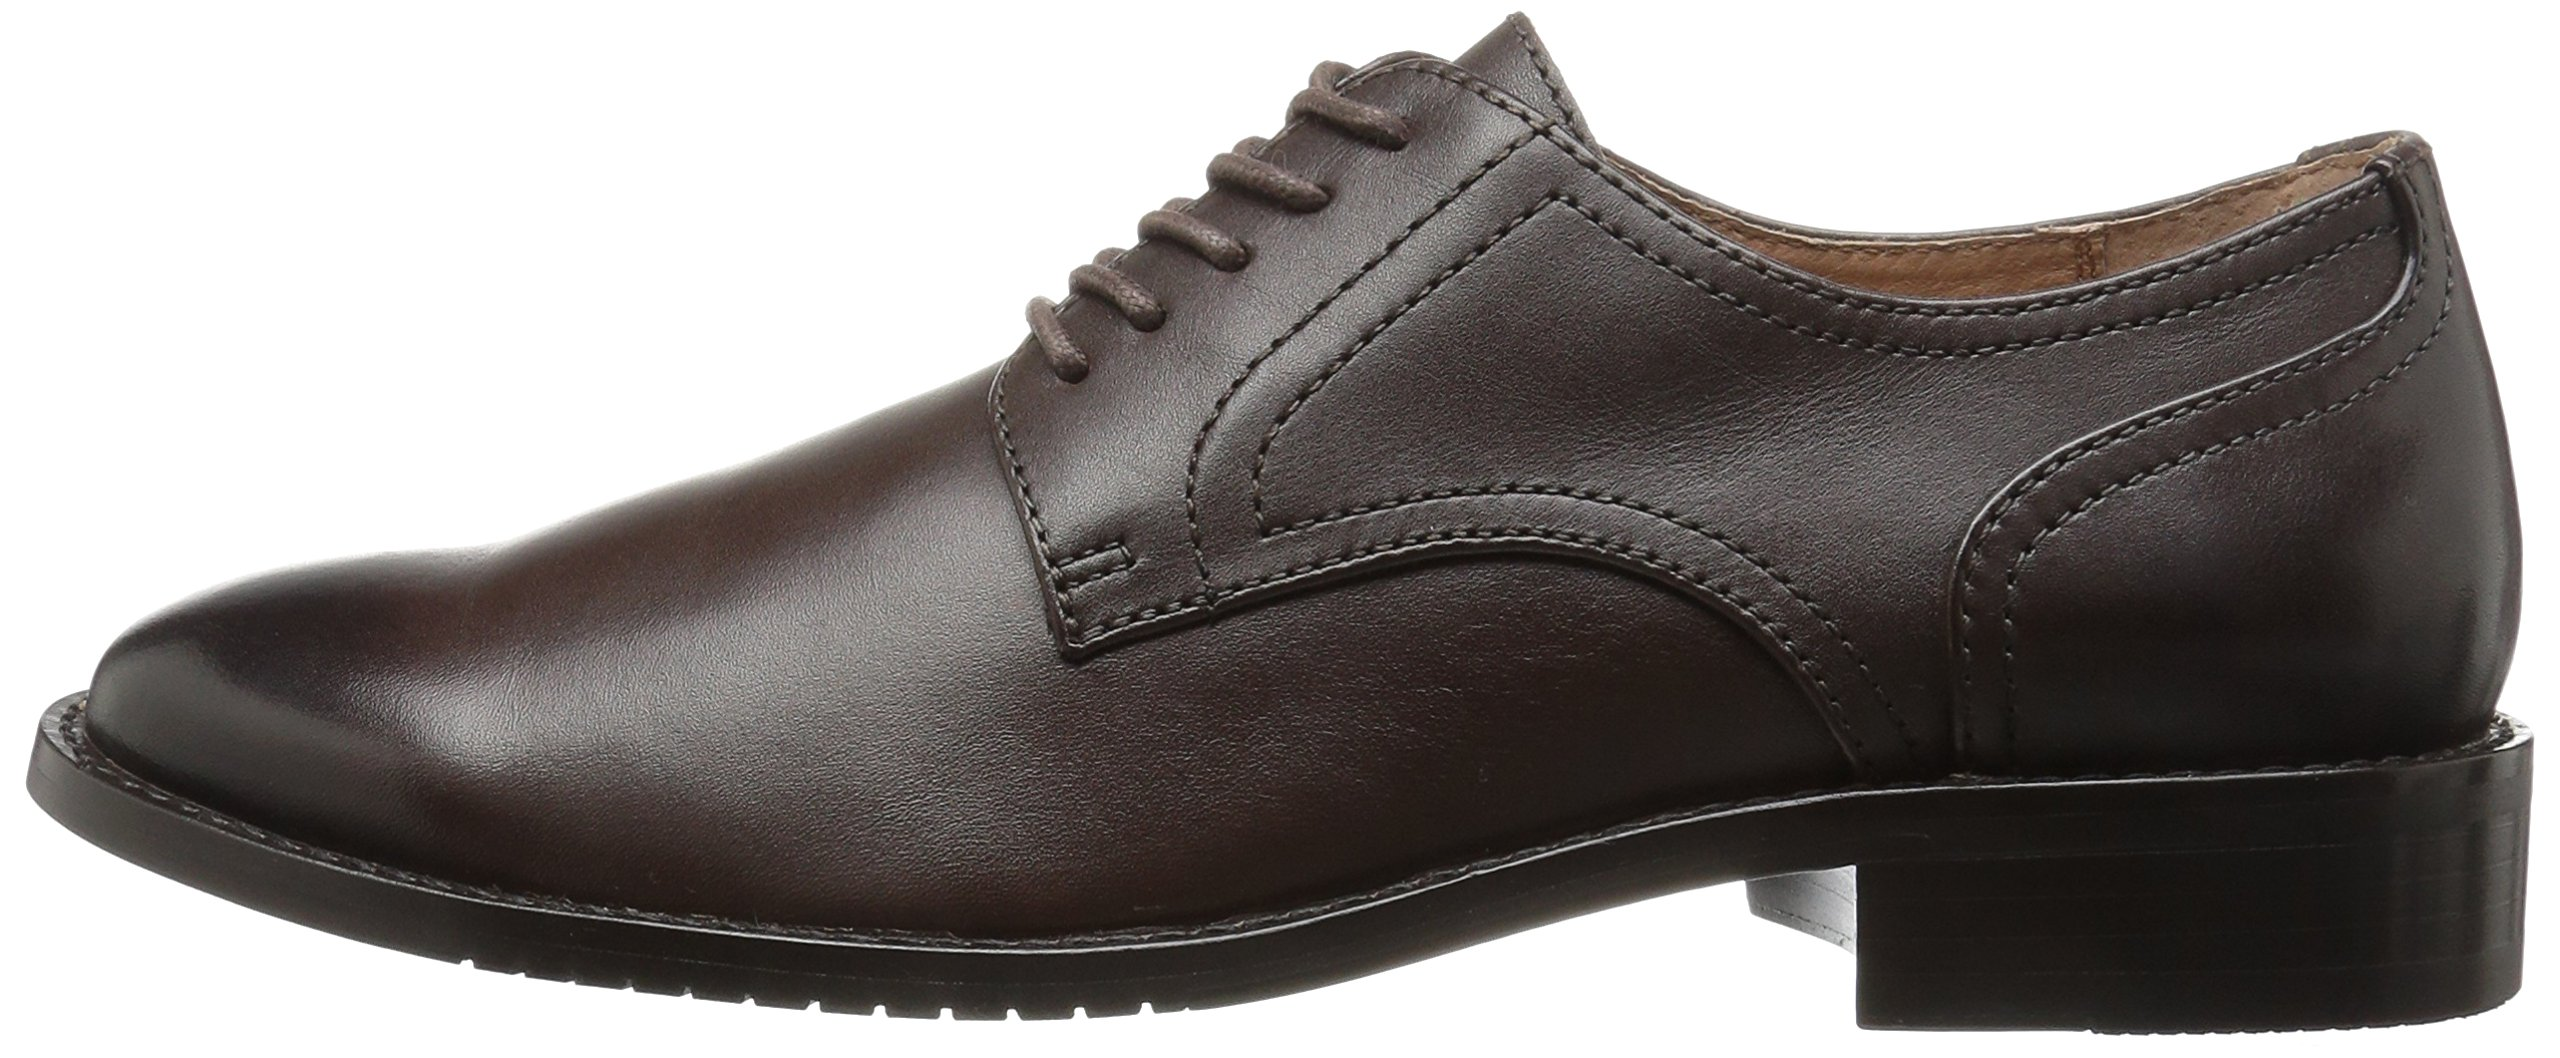 206 Collective Men's Concord Plain-Toe Oxford Shoe, Chocolate Brown, 11 D US by 206 Collective (Image #5)